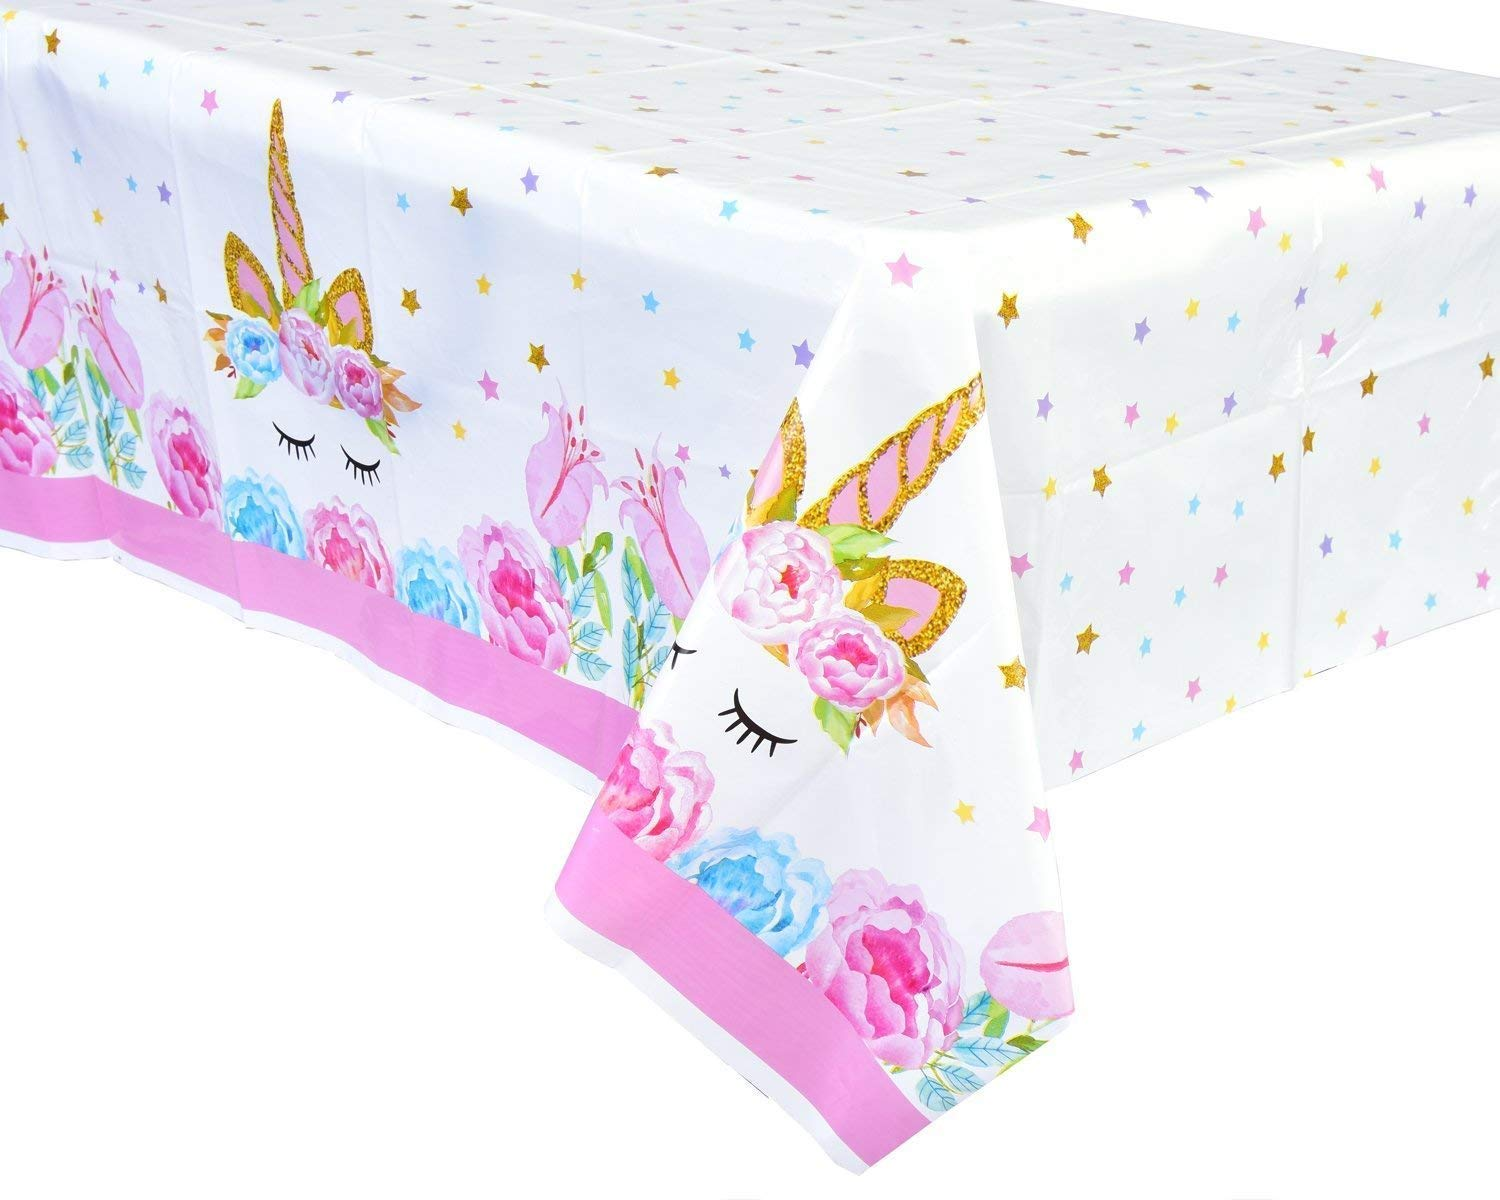 Larger Size Unicorn Plastic Table Cover,Disposable Unicorn Tablecloth, Magical Unicorn Party Supplies – 52 x 87 Inches 2pk 9053inch